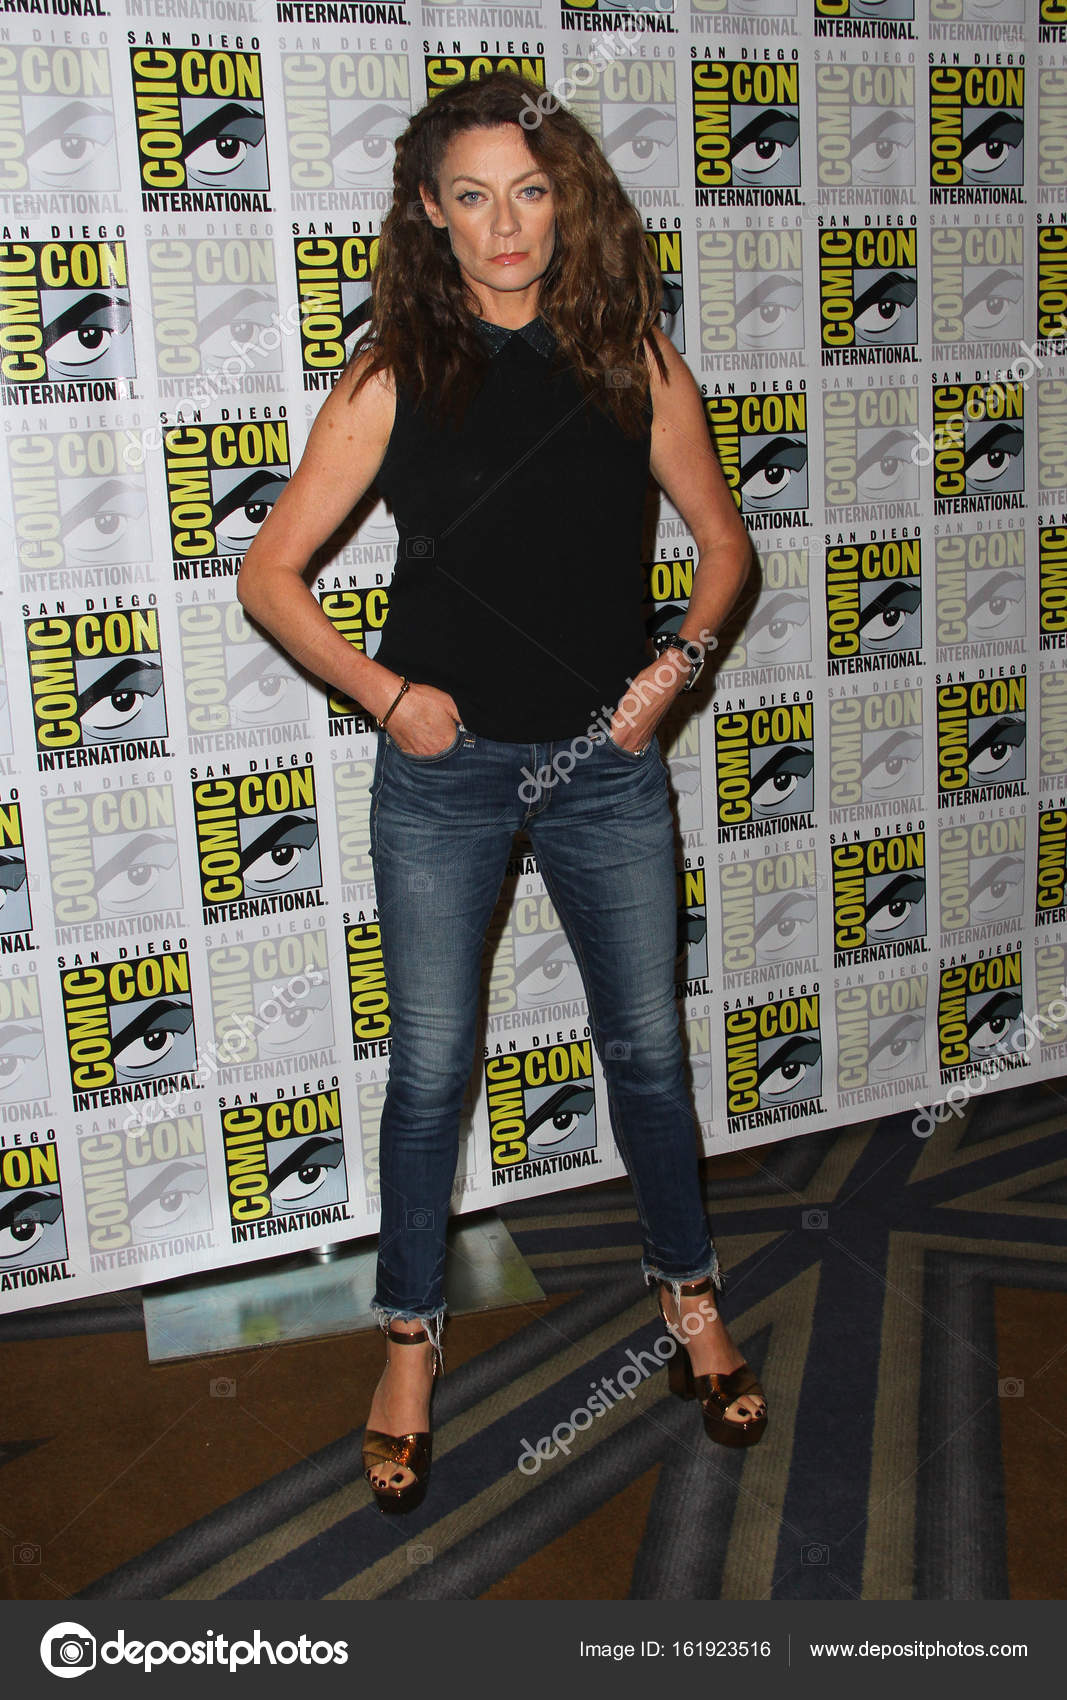 Discussion on this topic: Missy Malone, michelle-gomez/